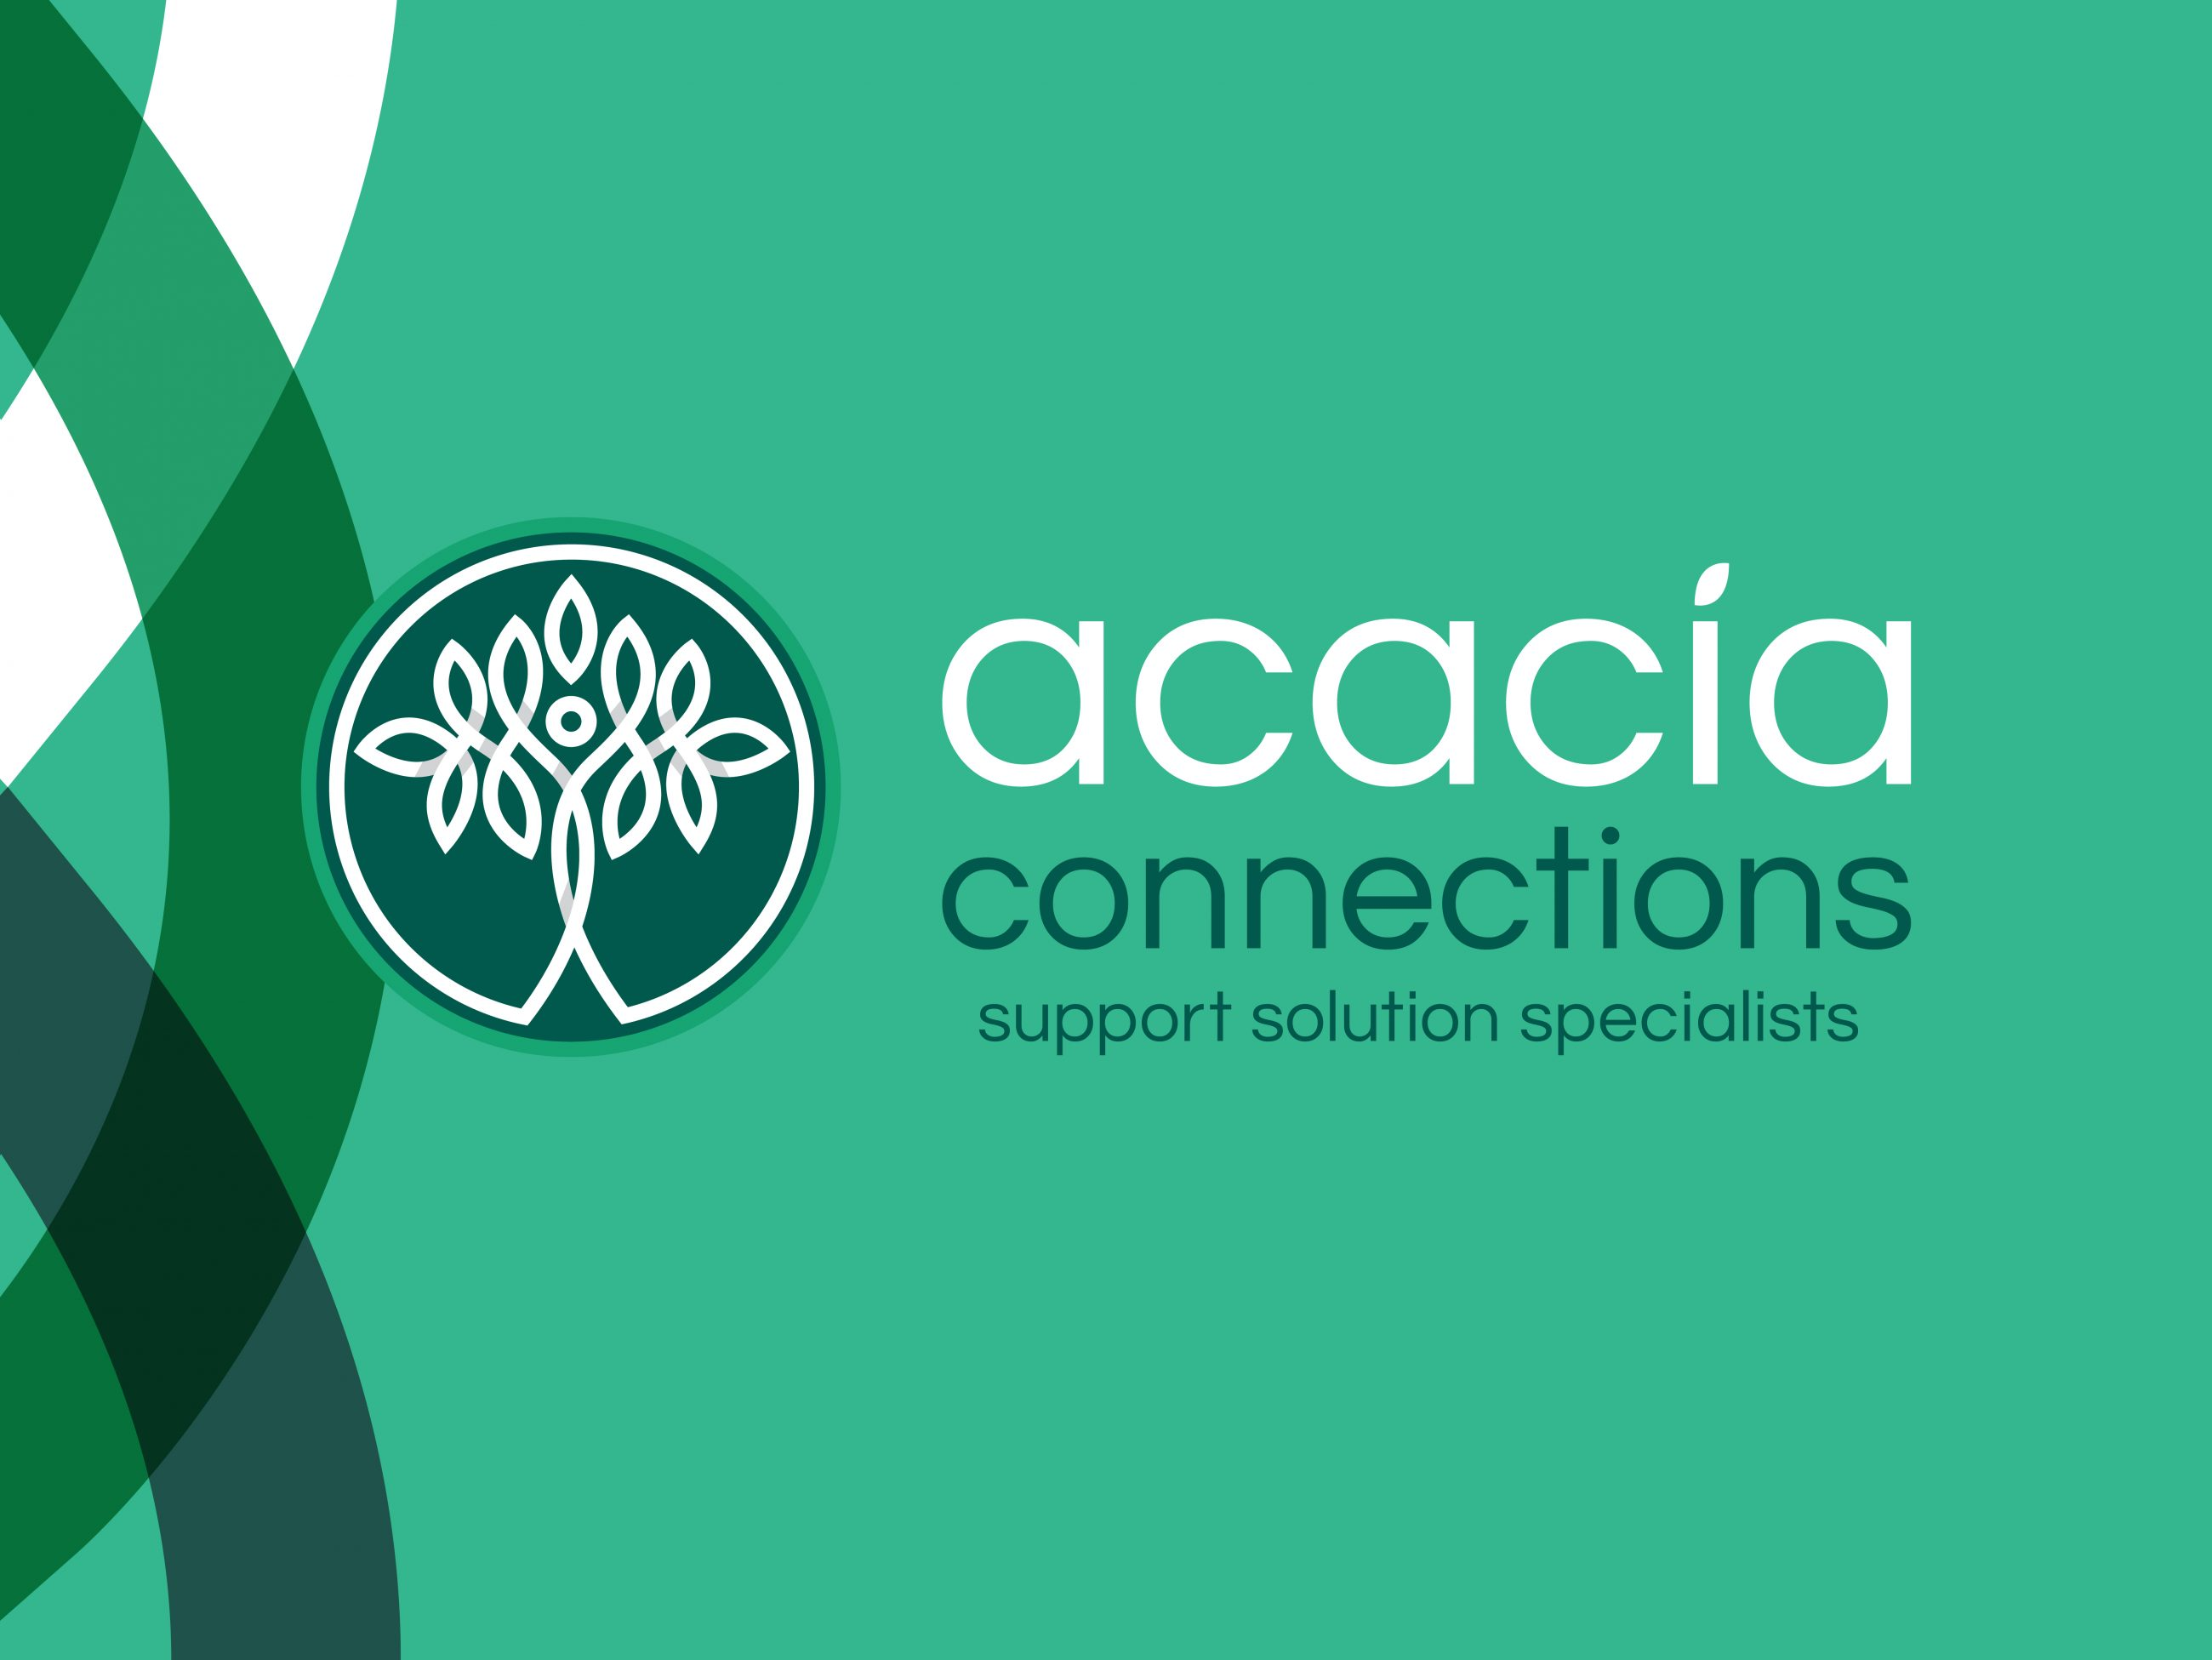 Acacia Connections new brand identity and structured brand architecture